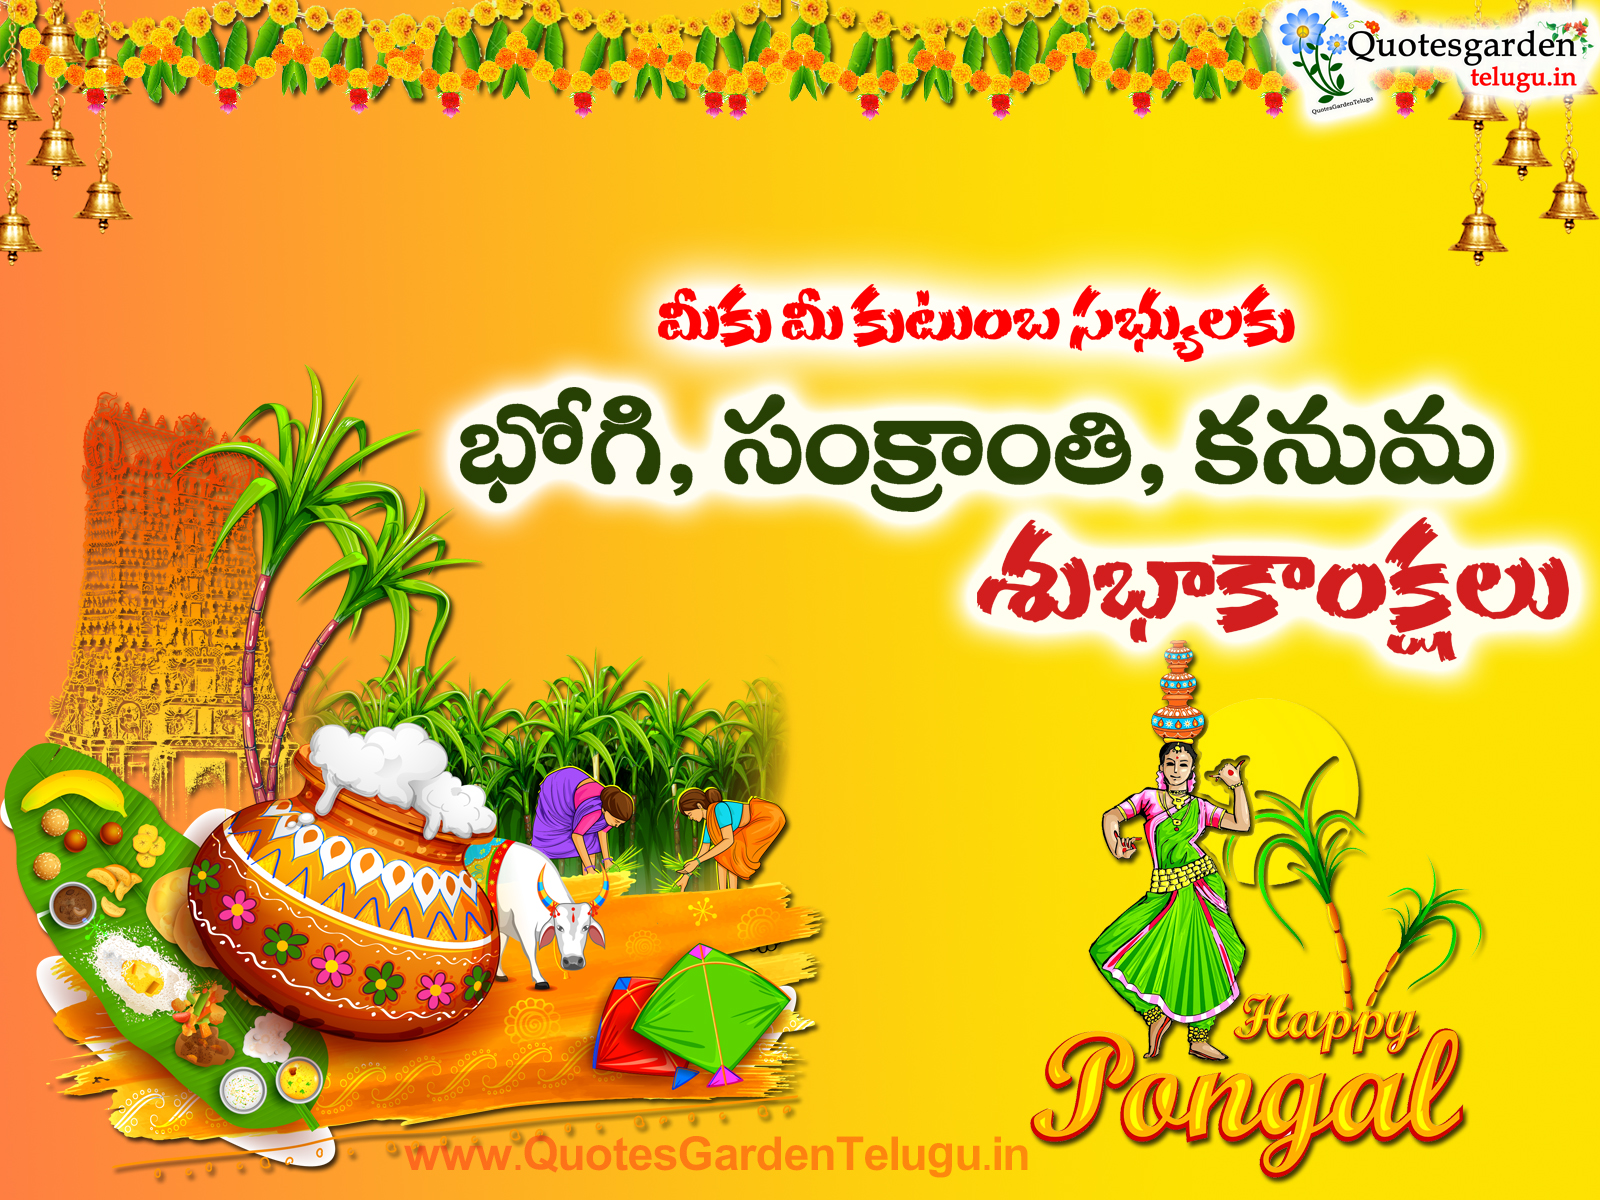 Telugu Sankranthi greetings wishes images wallpapers